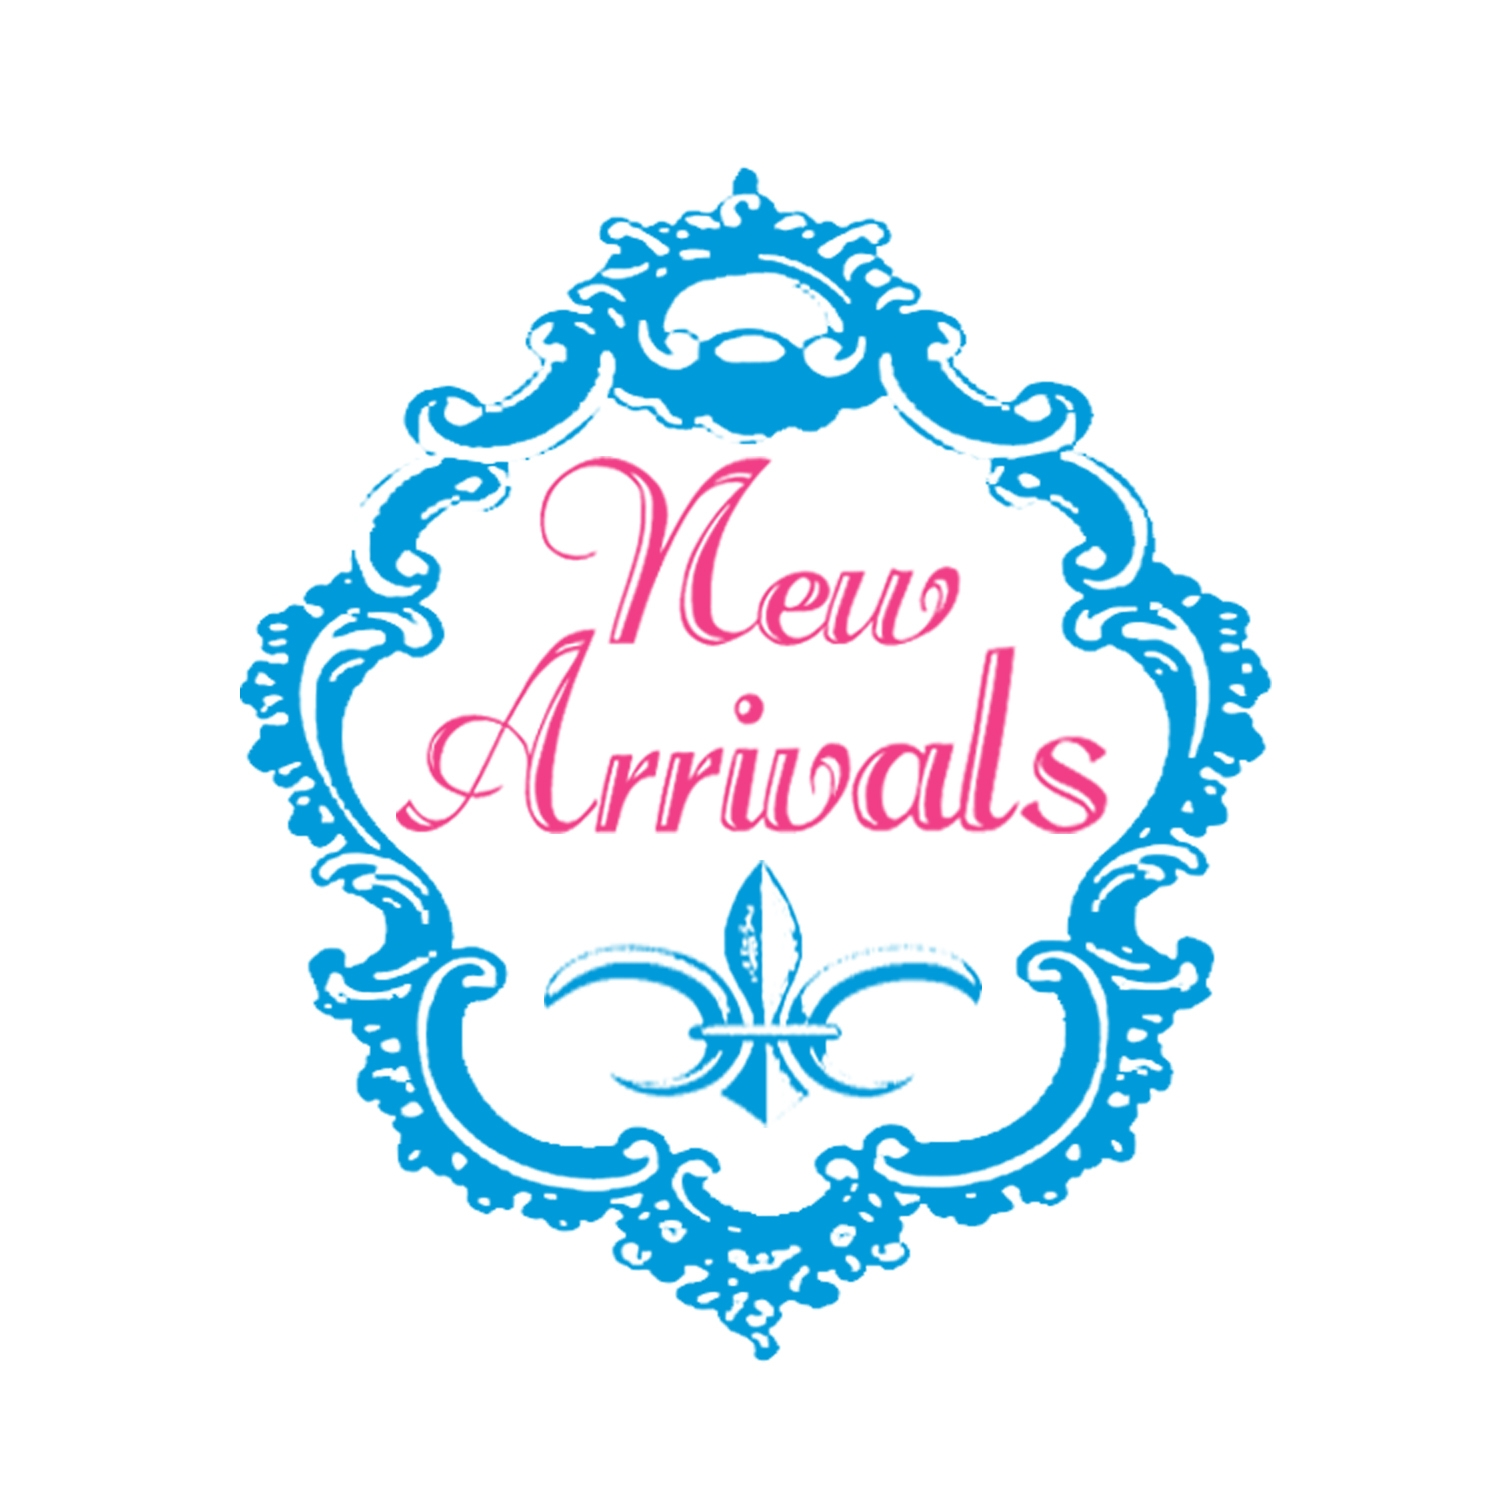 Stay on top of your style game with sneakers, clothing and more from our New Arrivals section here at funon.ml